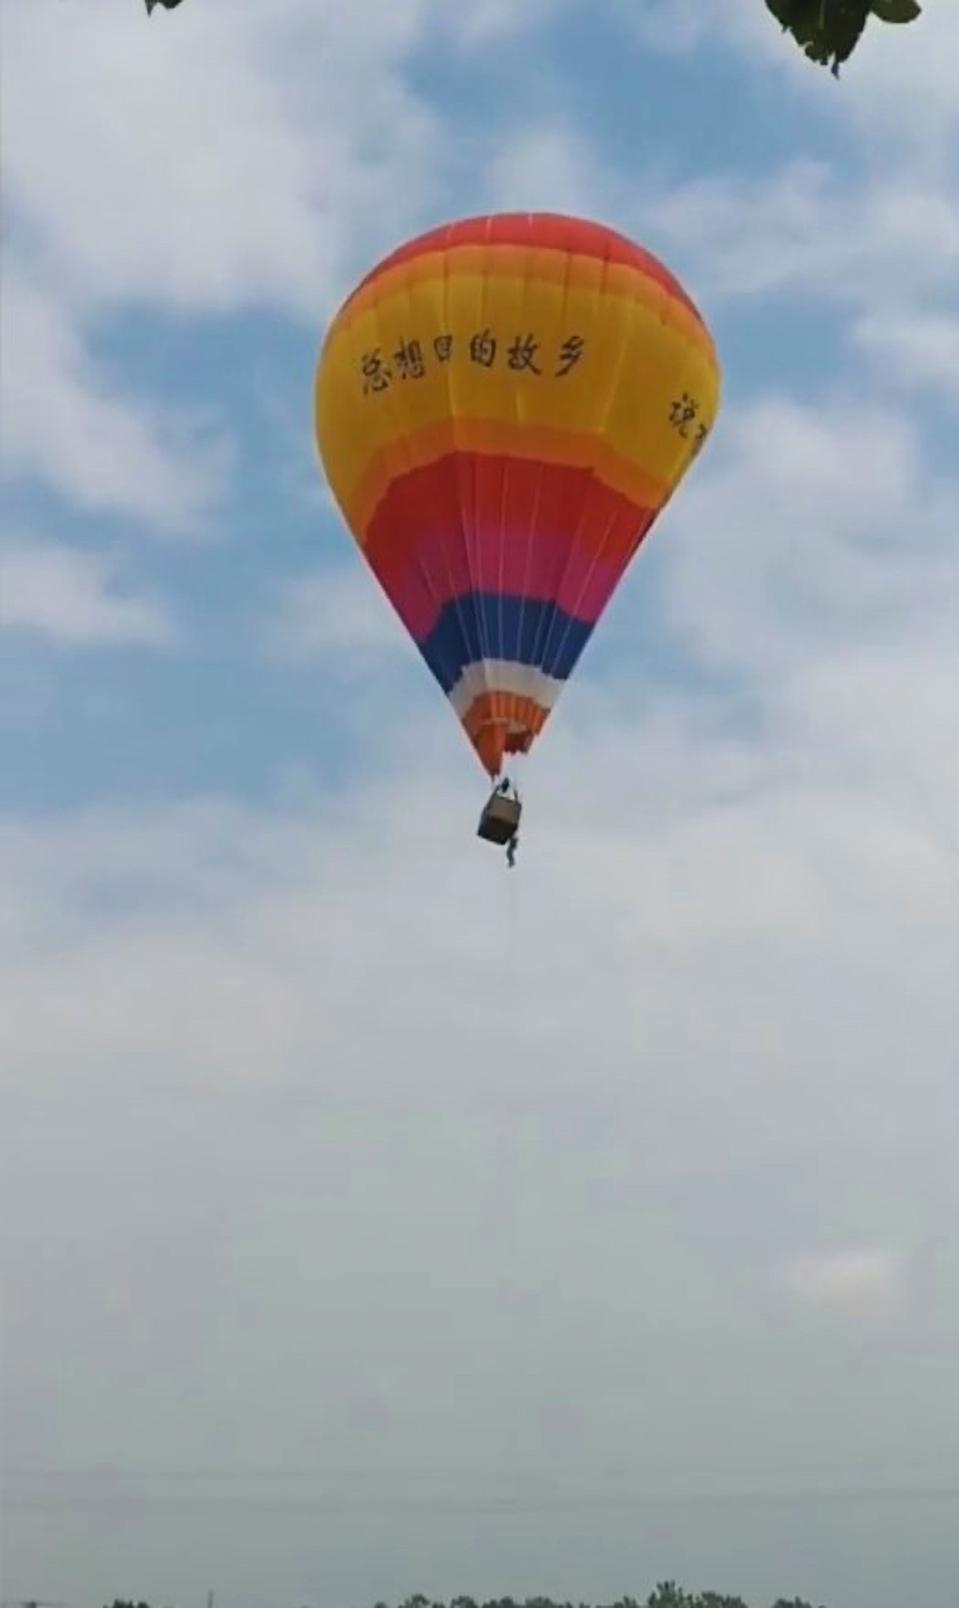 The student was working on the hot air balloon at the time of his fall. Source: Newsflash/Australscope